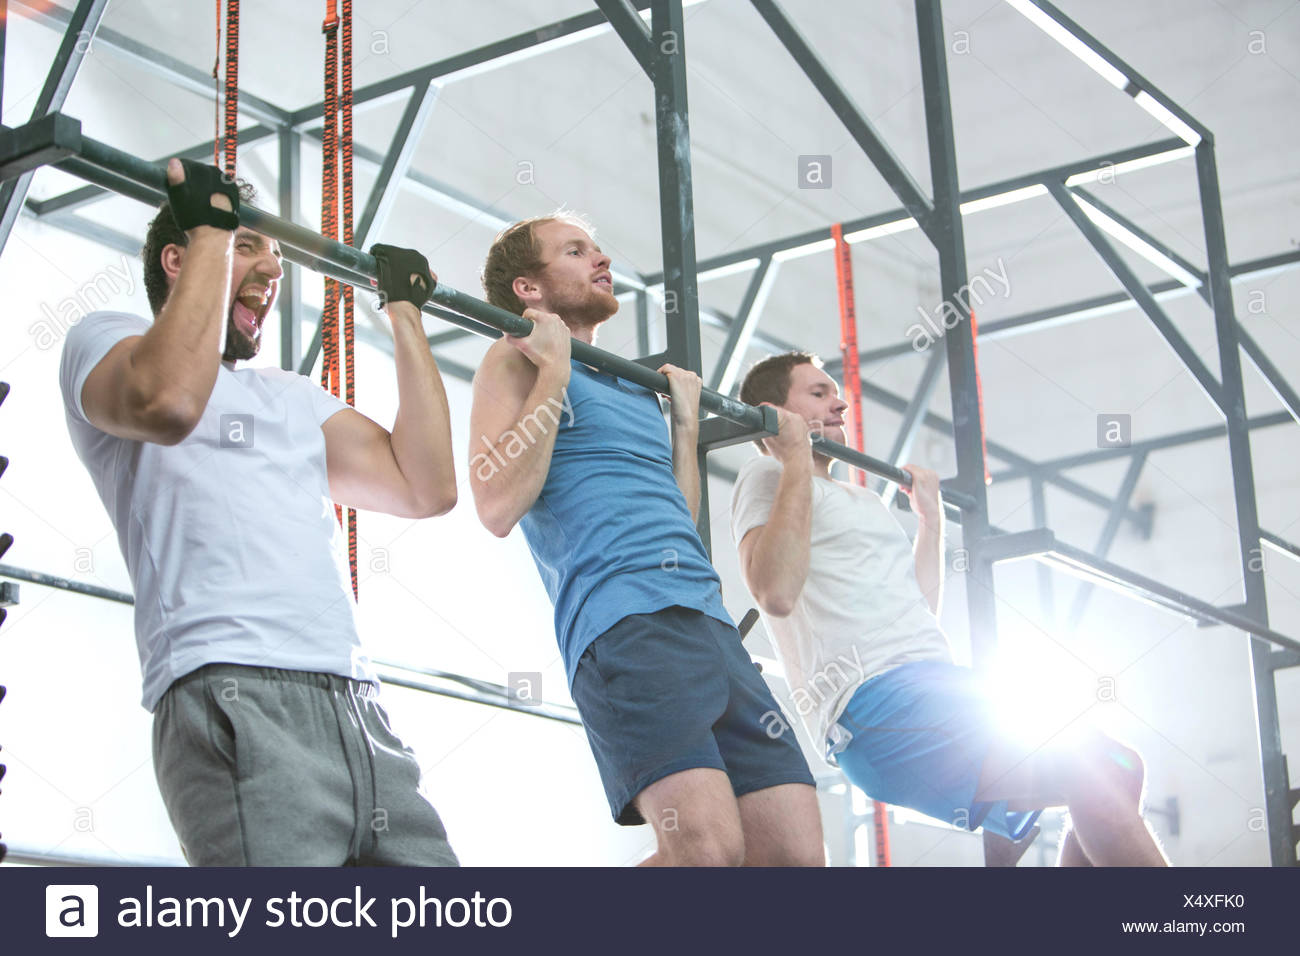 Low angle view of dedicated men doing chin-ups in crossfit gym - Stock Image